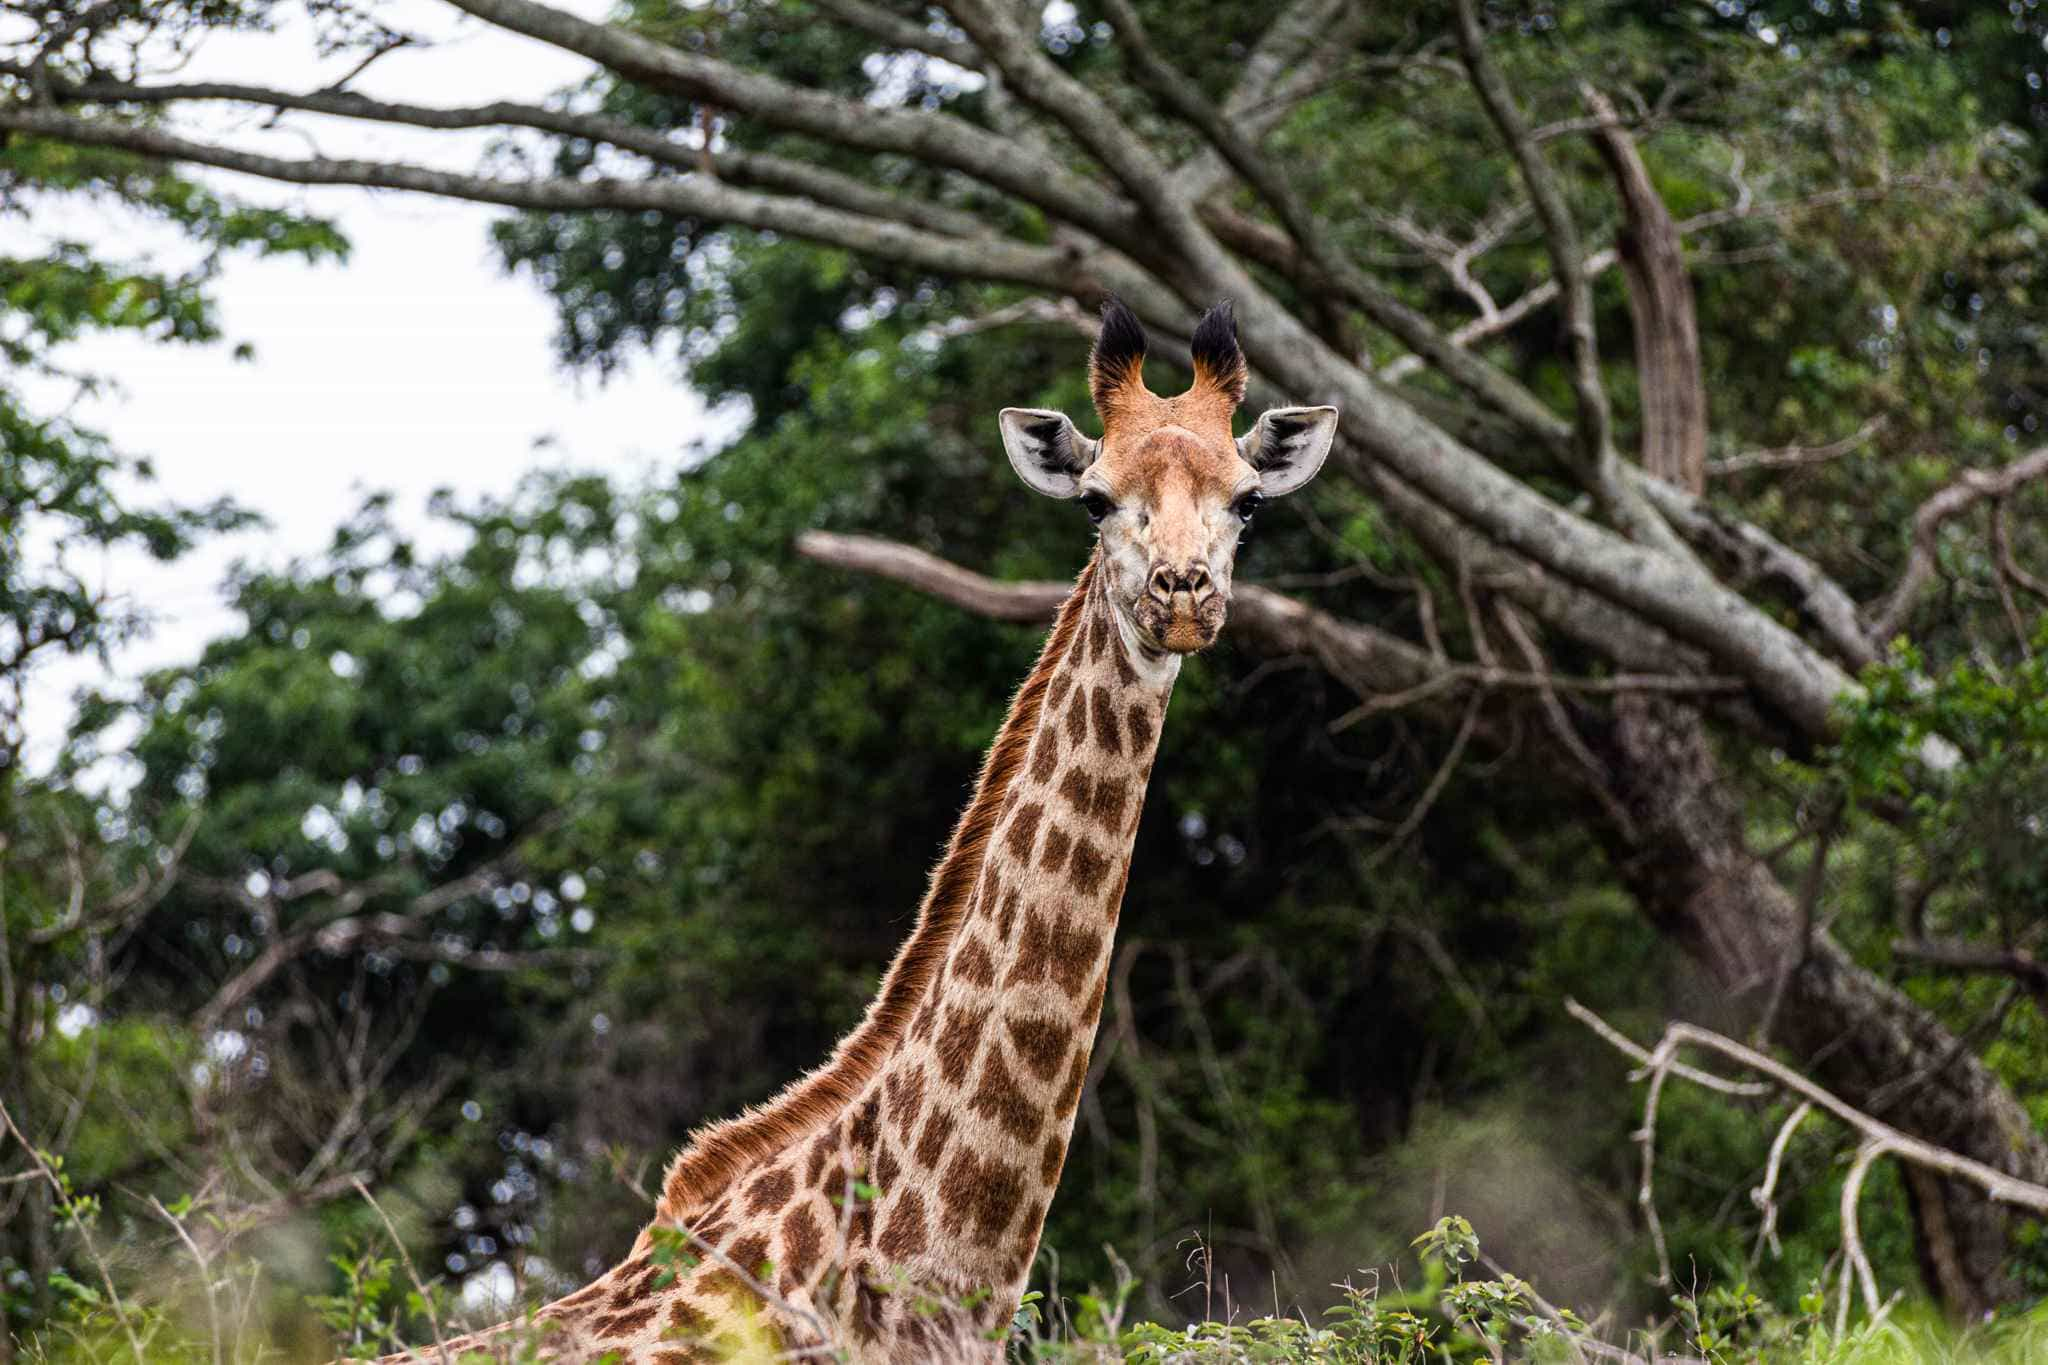 a giraffe stands alone in the bush, staring into the camera